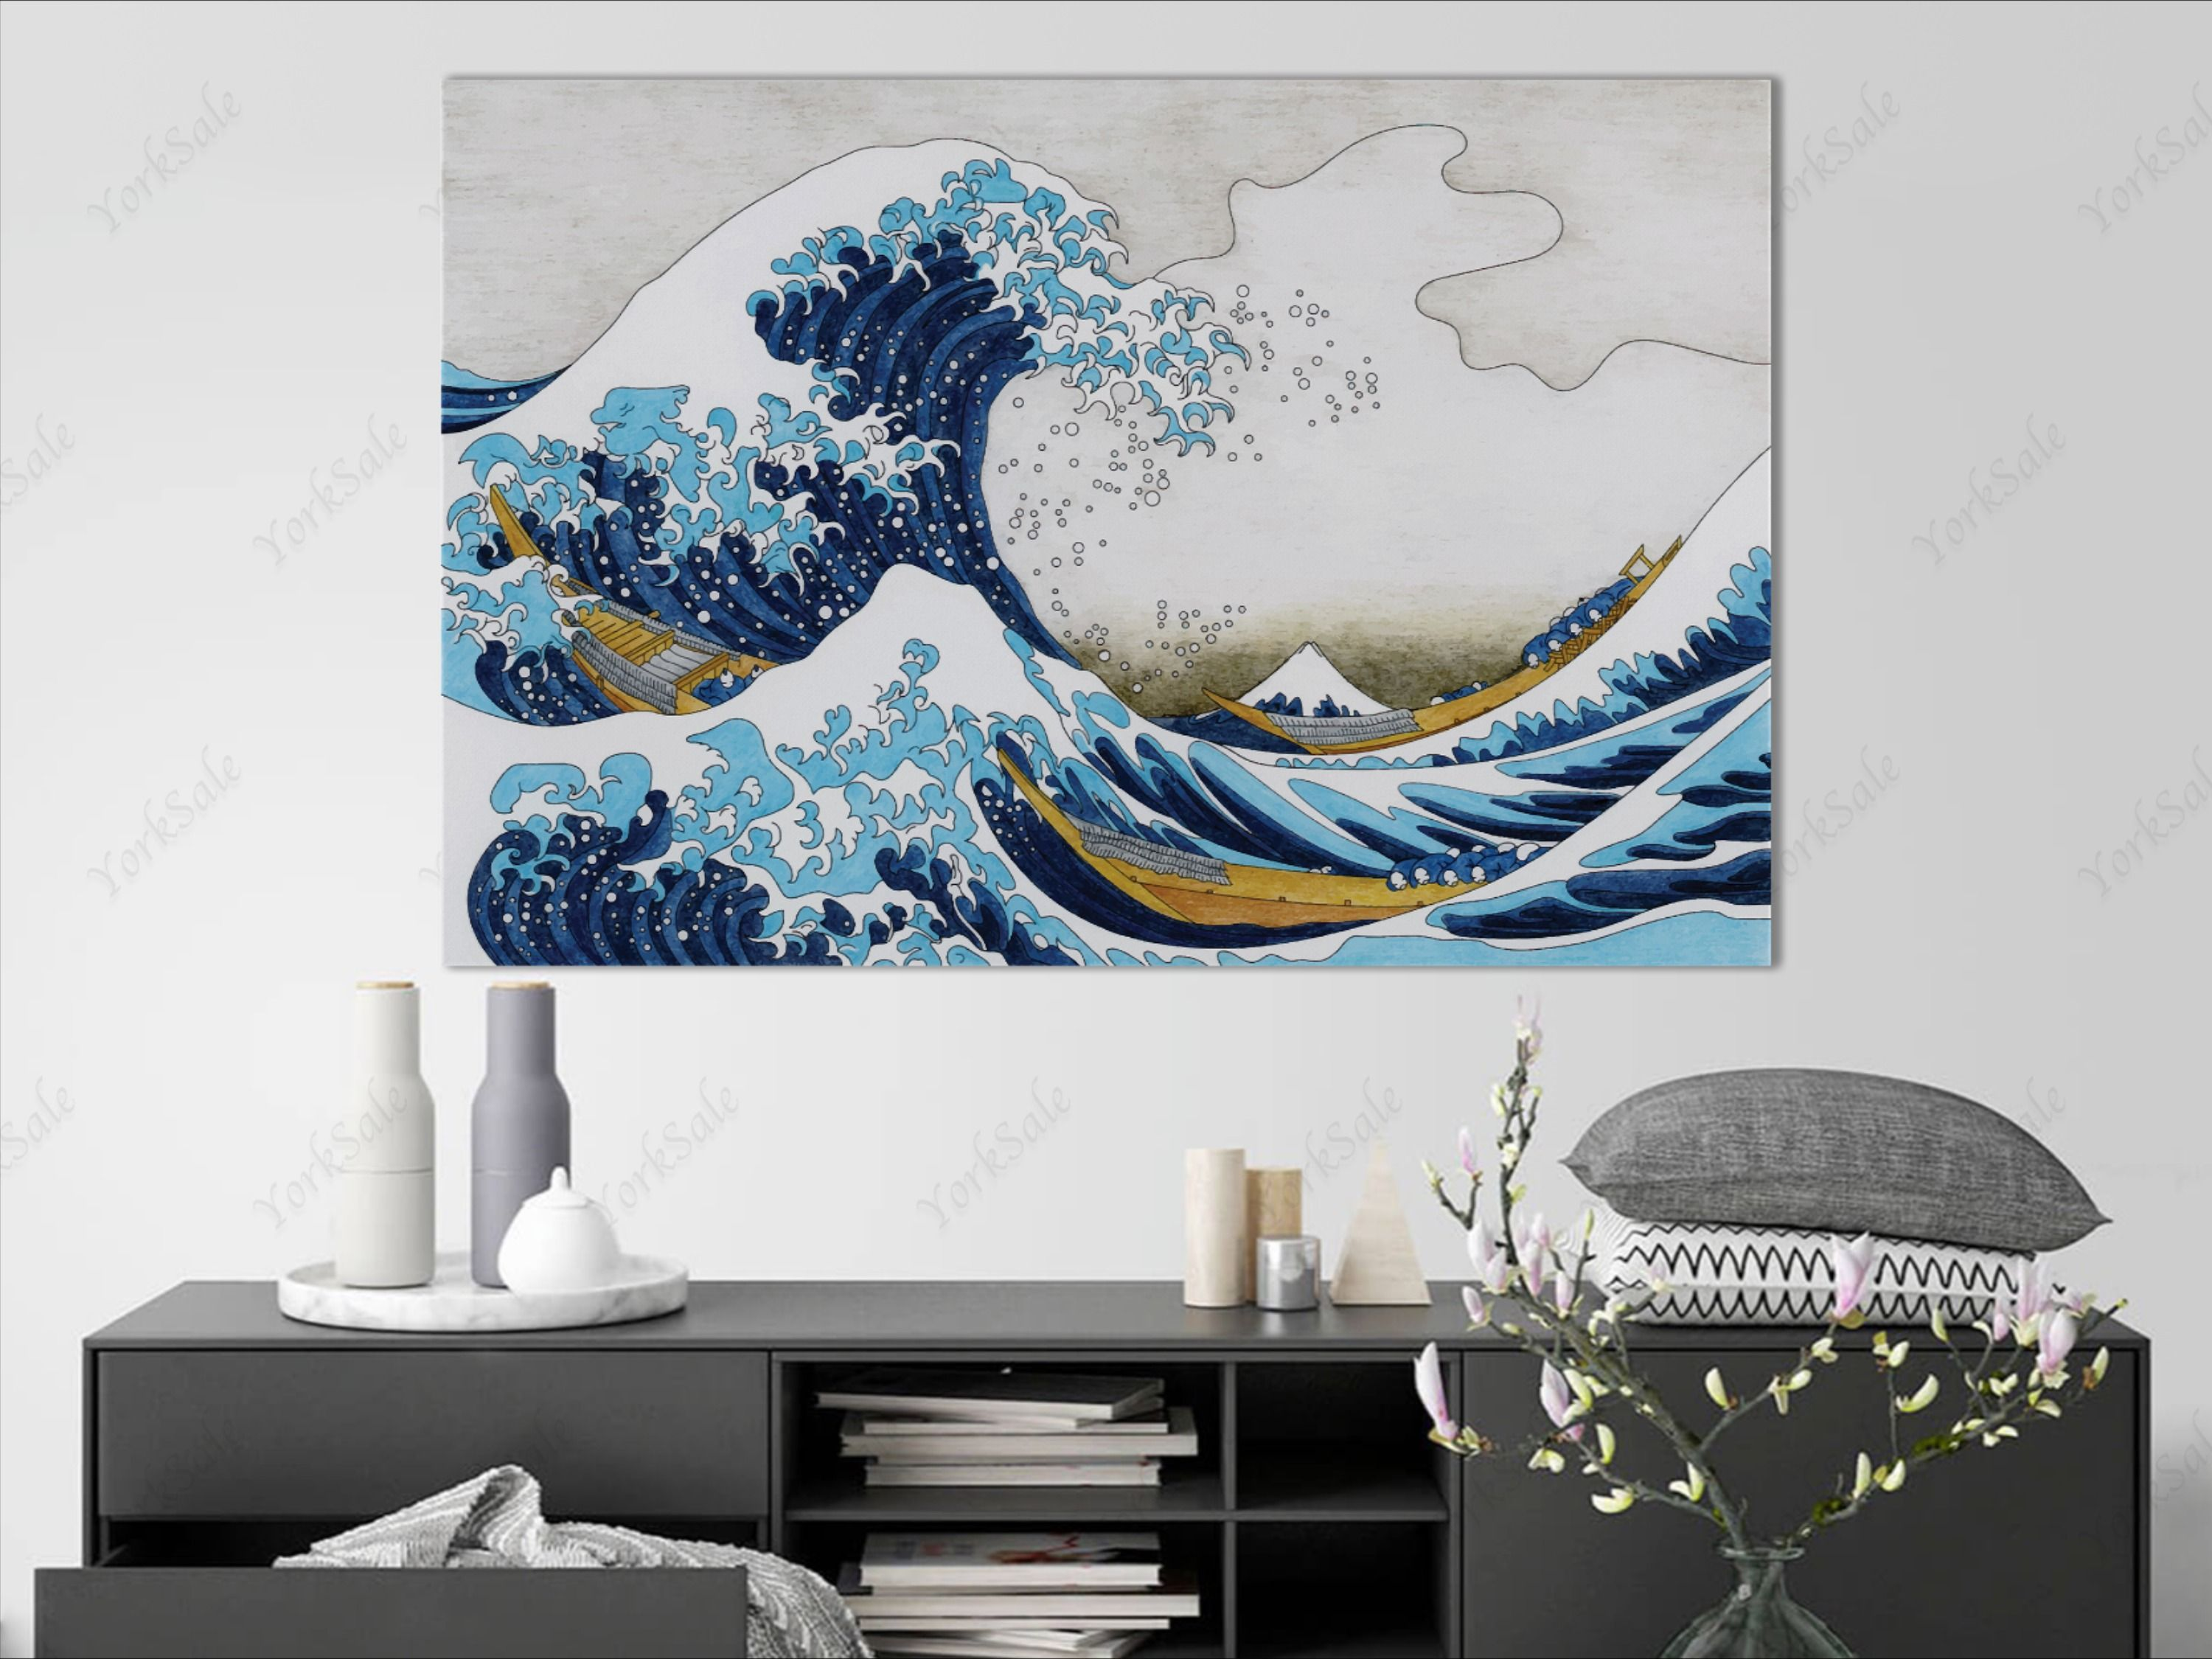 The Great Wave Off Kanagawa Wall Art Japanese Wave Vintage Etsy Canvas Decor Home Wall Decor Japanese Wave Painting